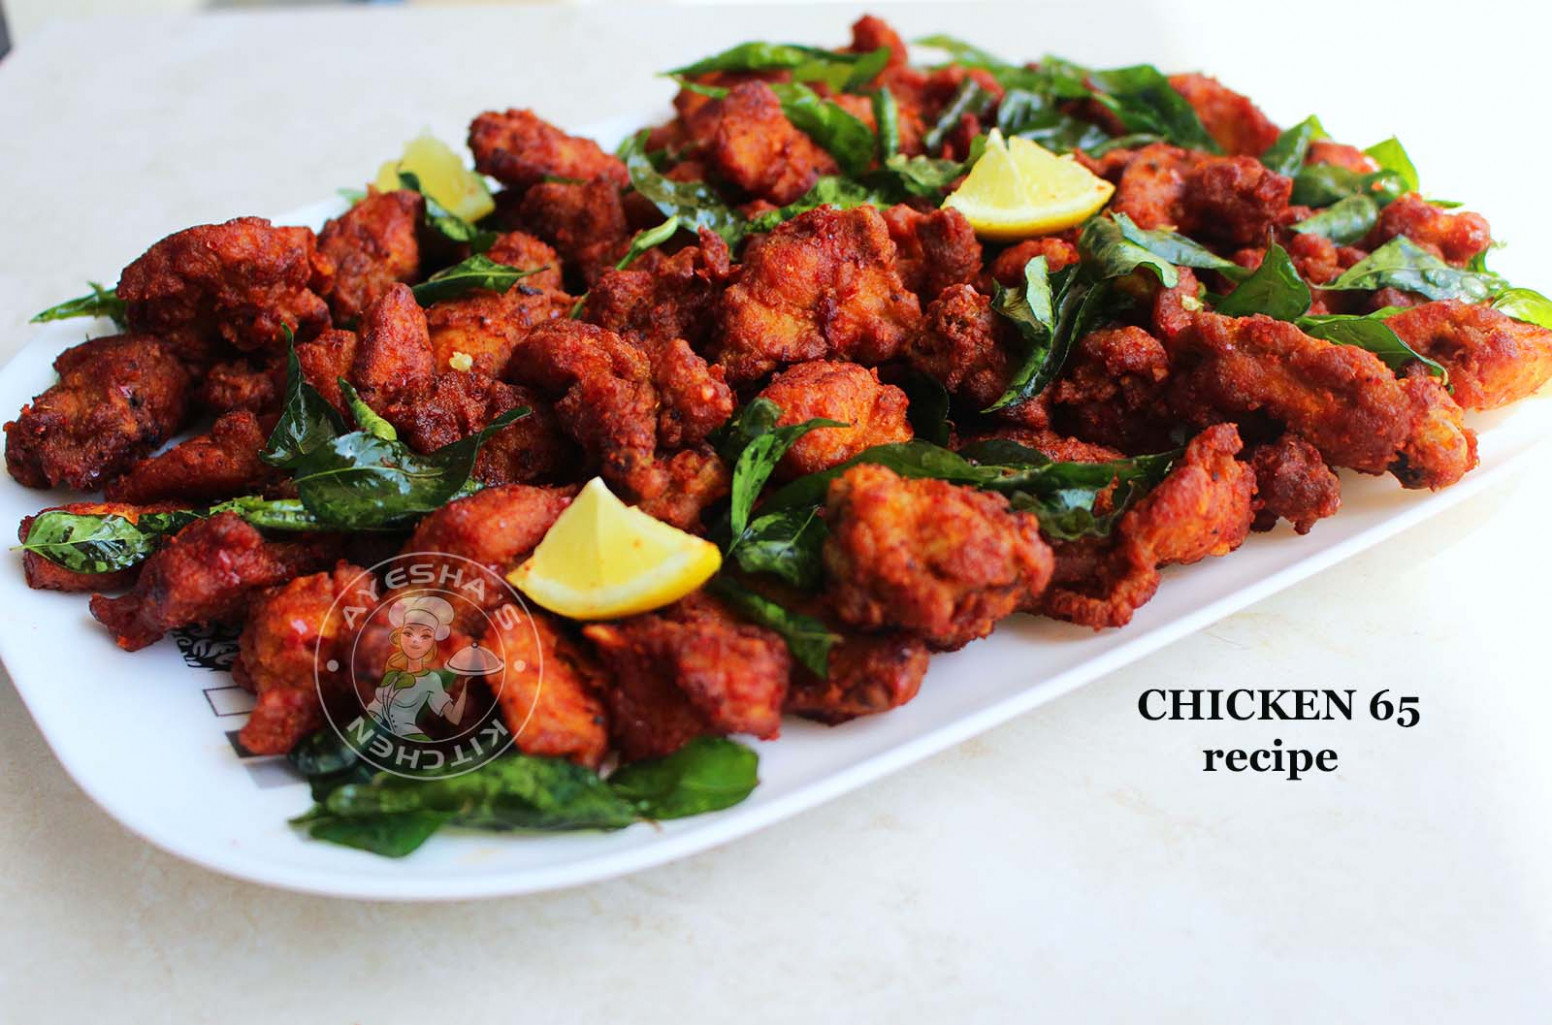 Chicken 13 recipe | How to Make Perfect Chicken 13 Recipe at ..